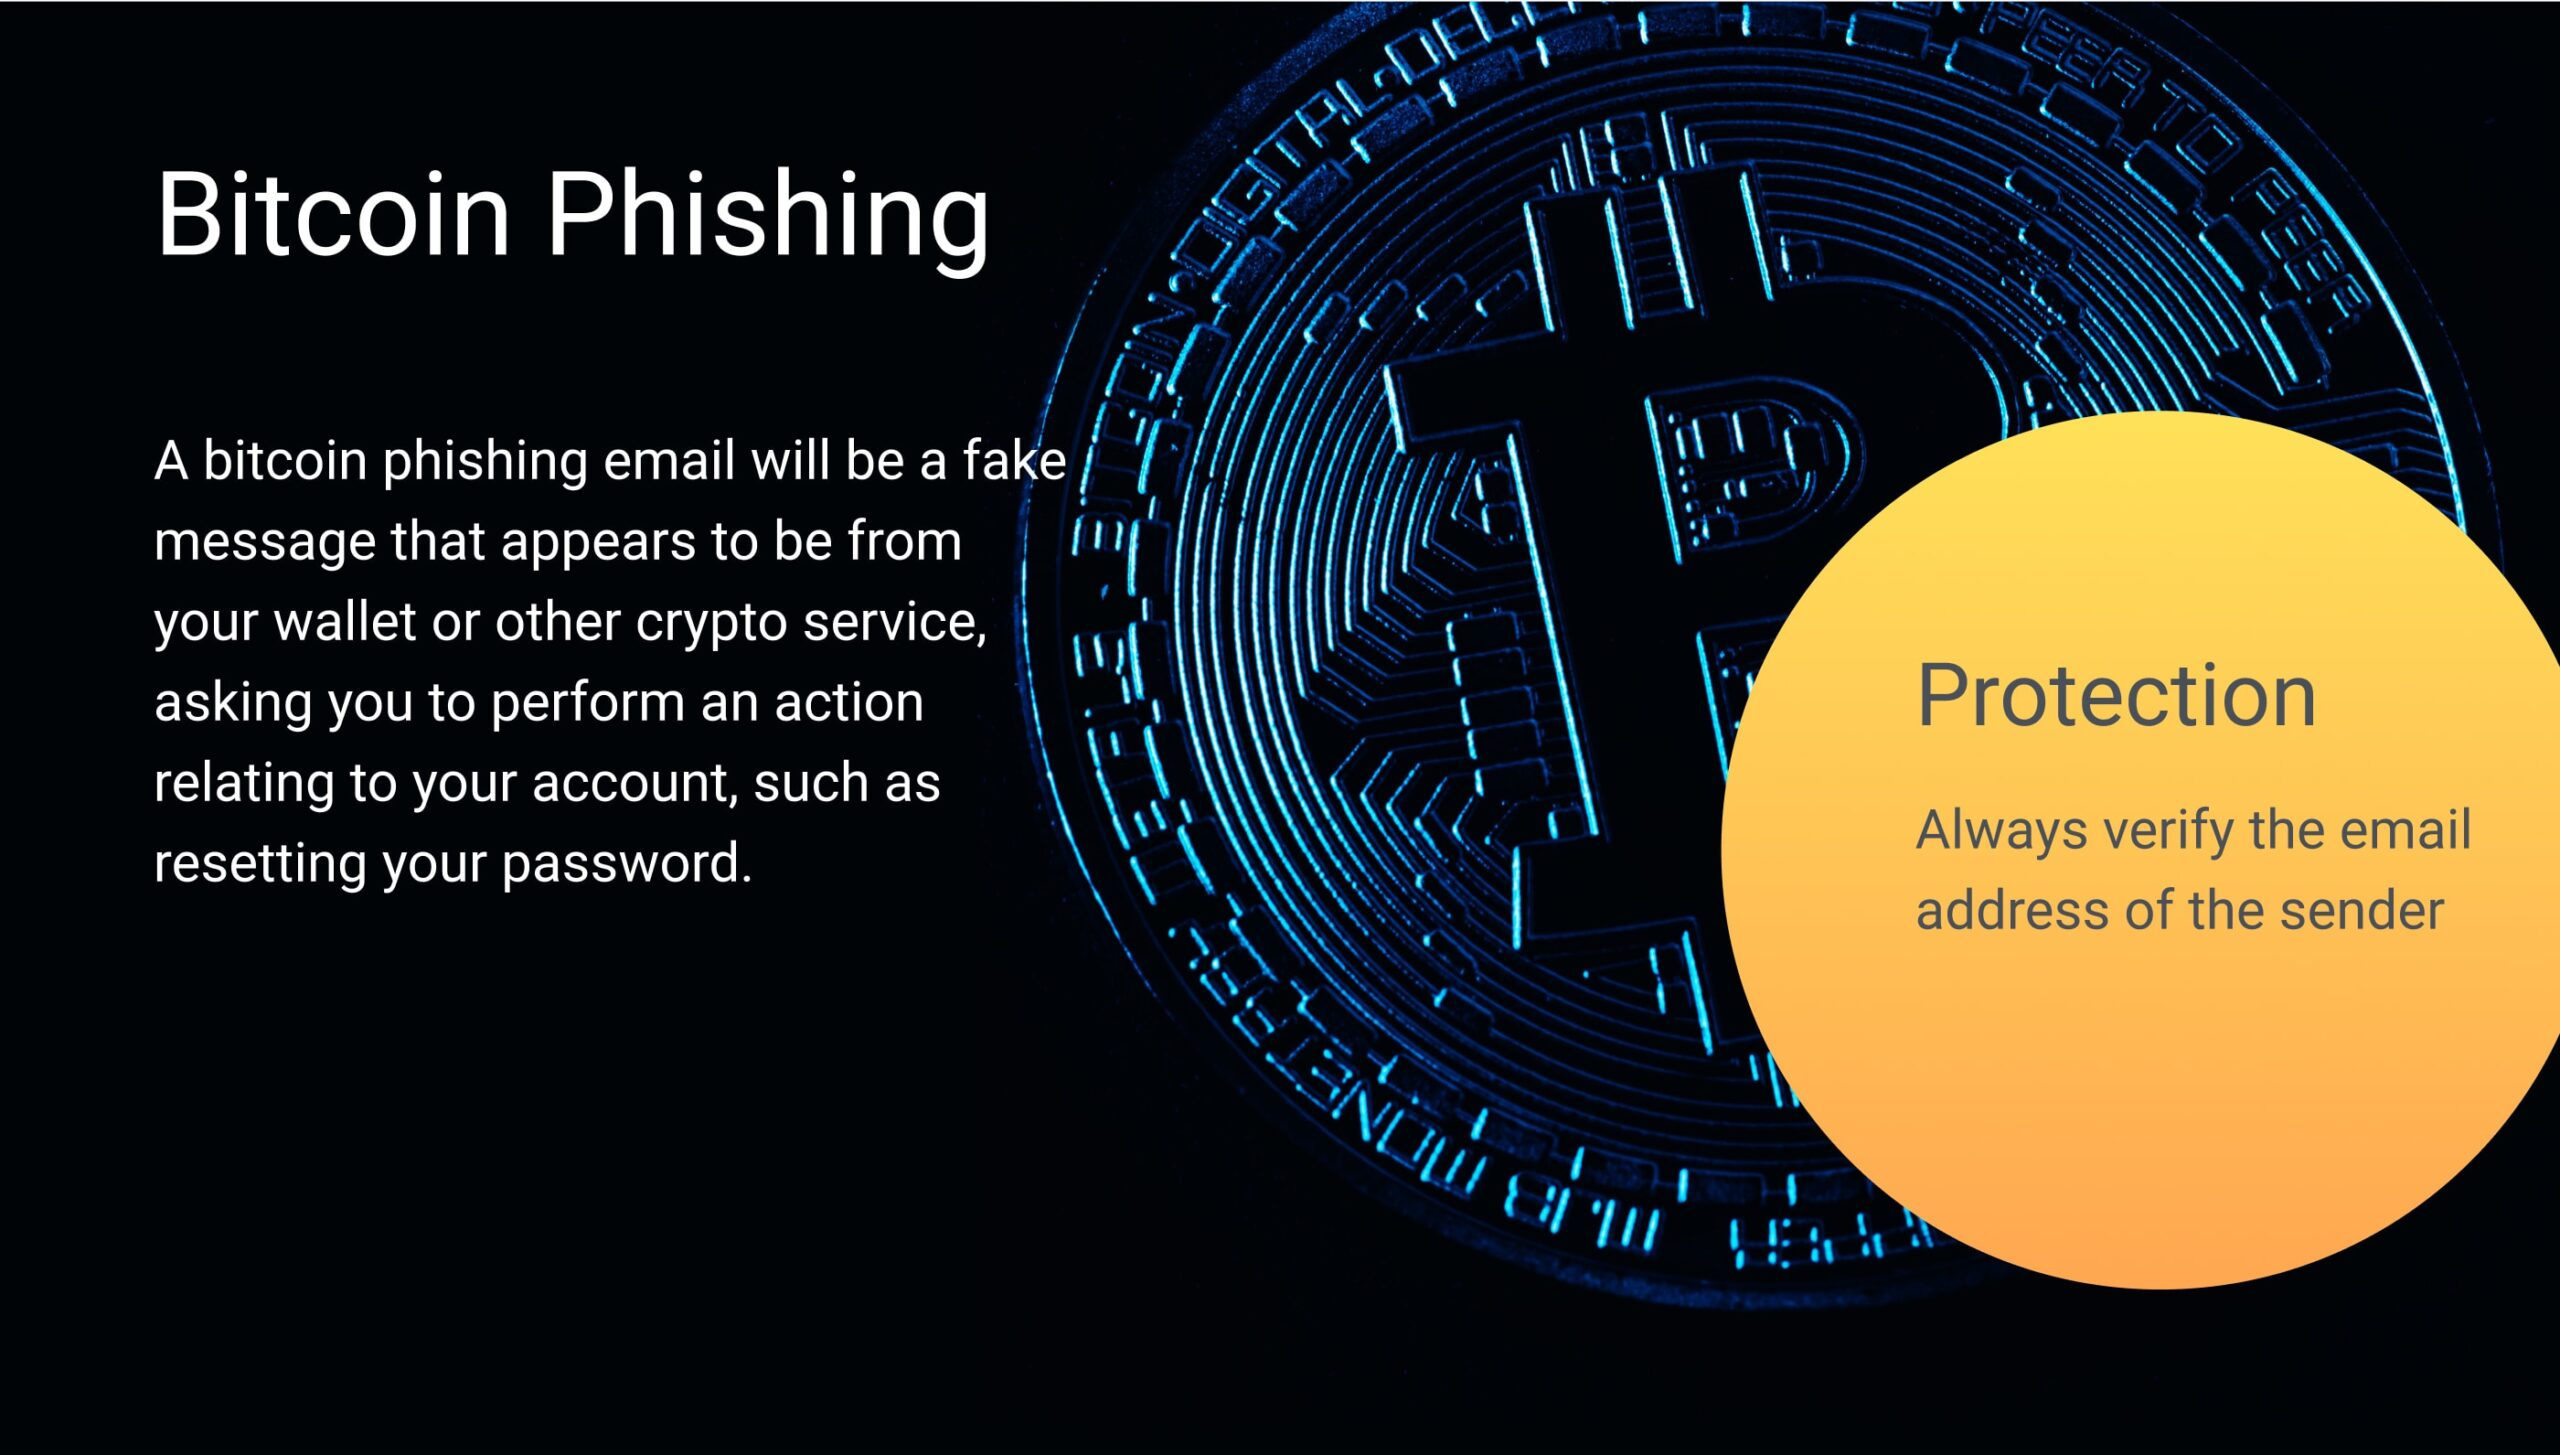 Bitcoin phishing is one of the most common crypto attack types